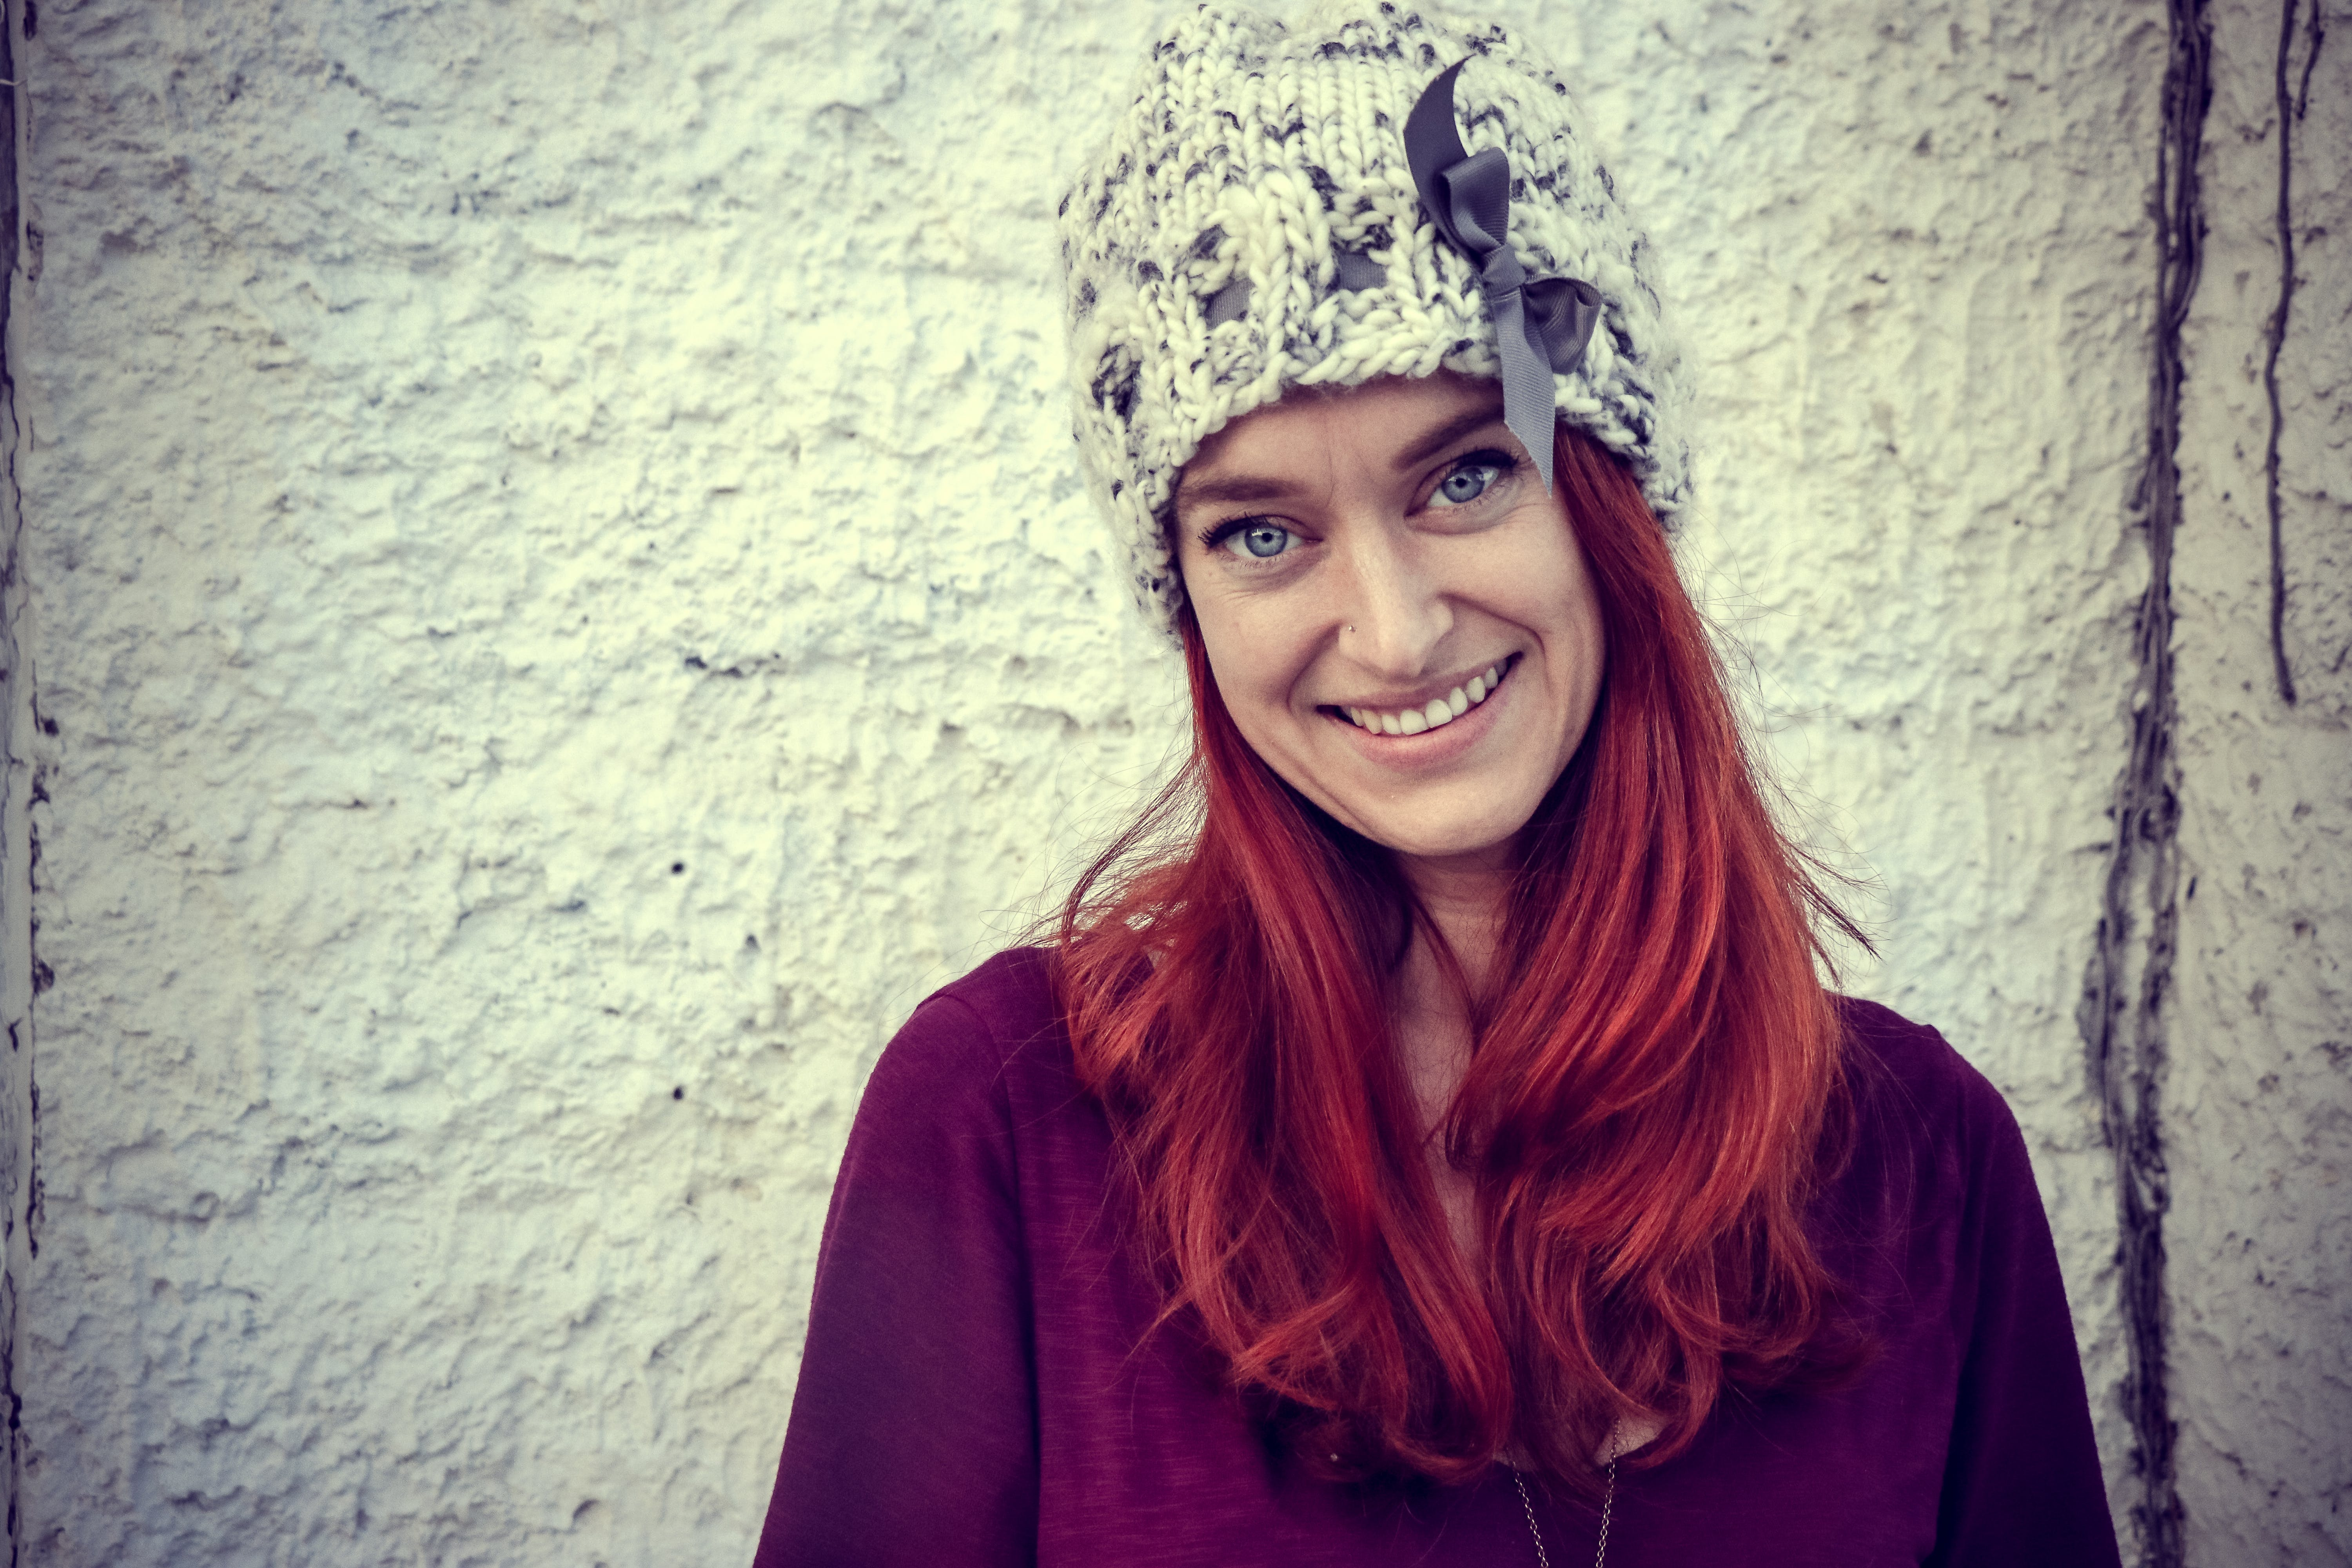 Woman With Red Hair Wears Purple Top